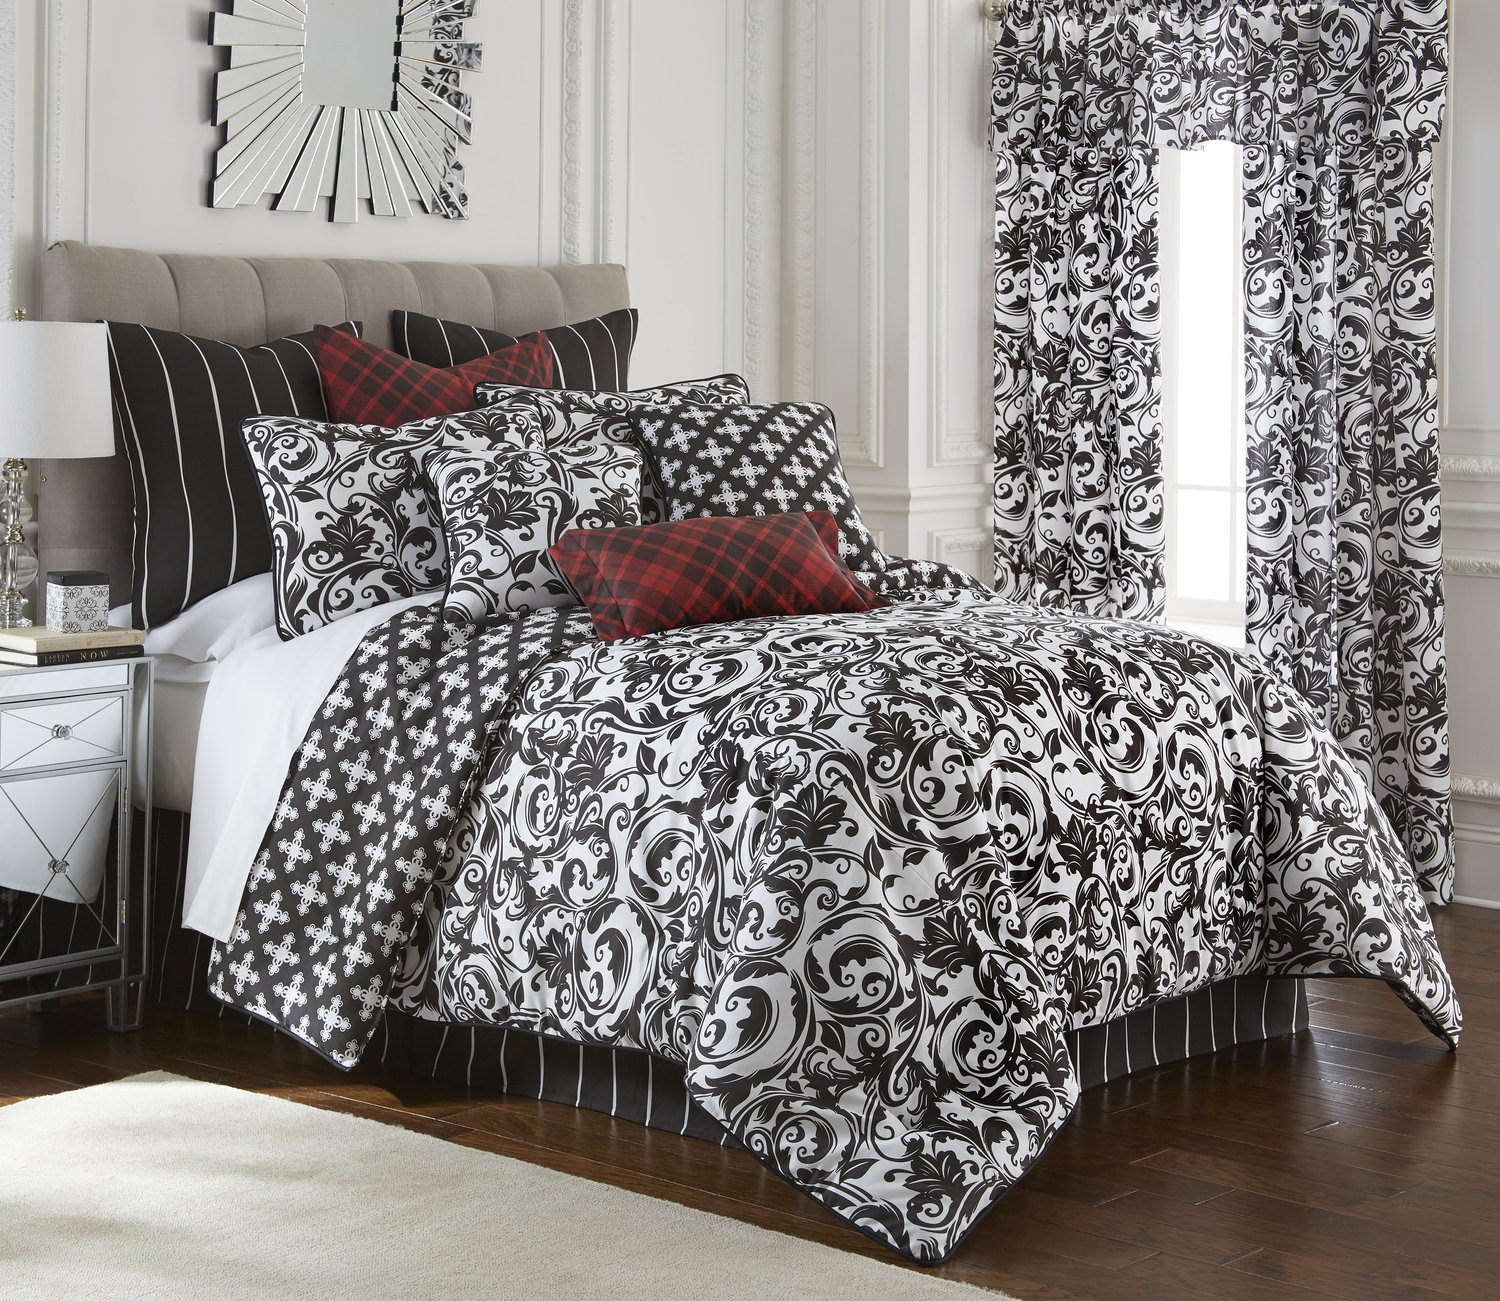 Scrollwork by Colcha Linens